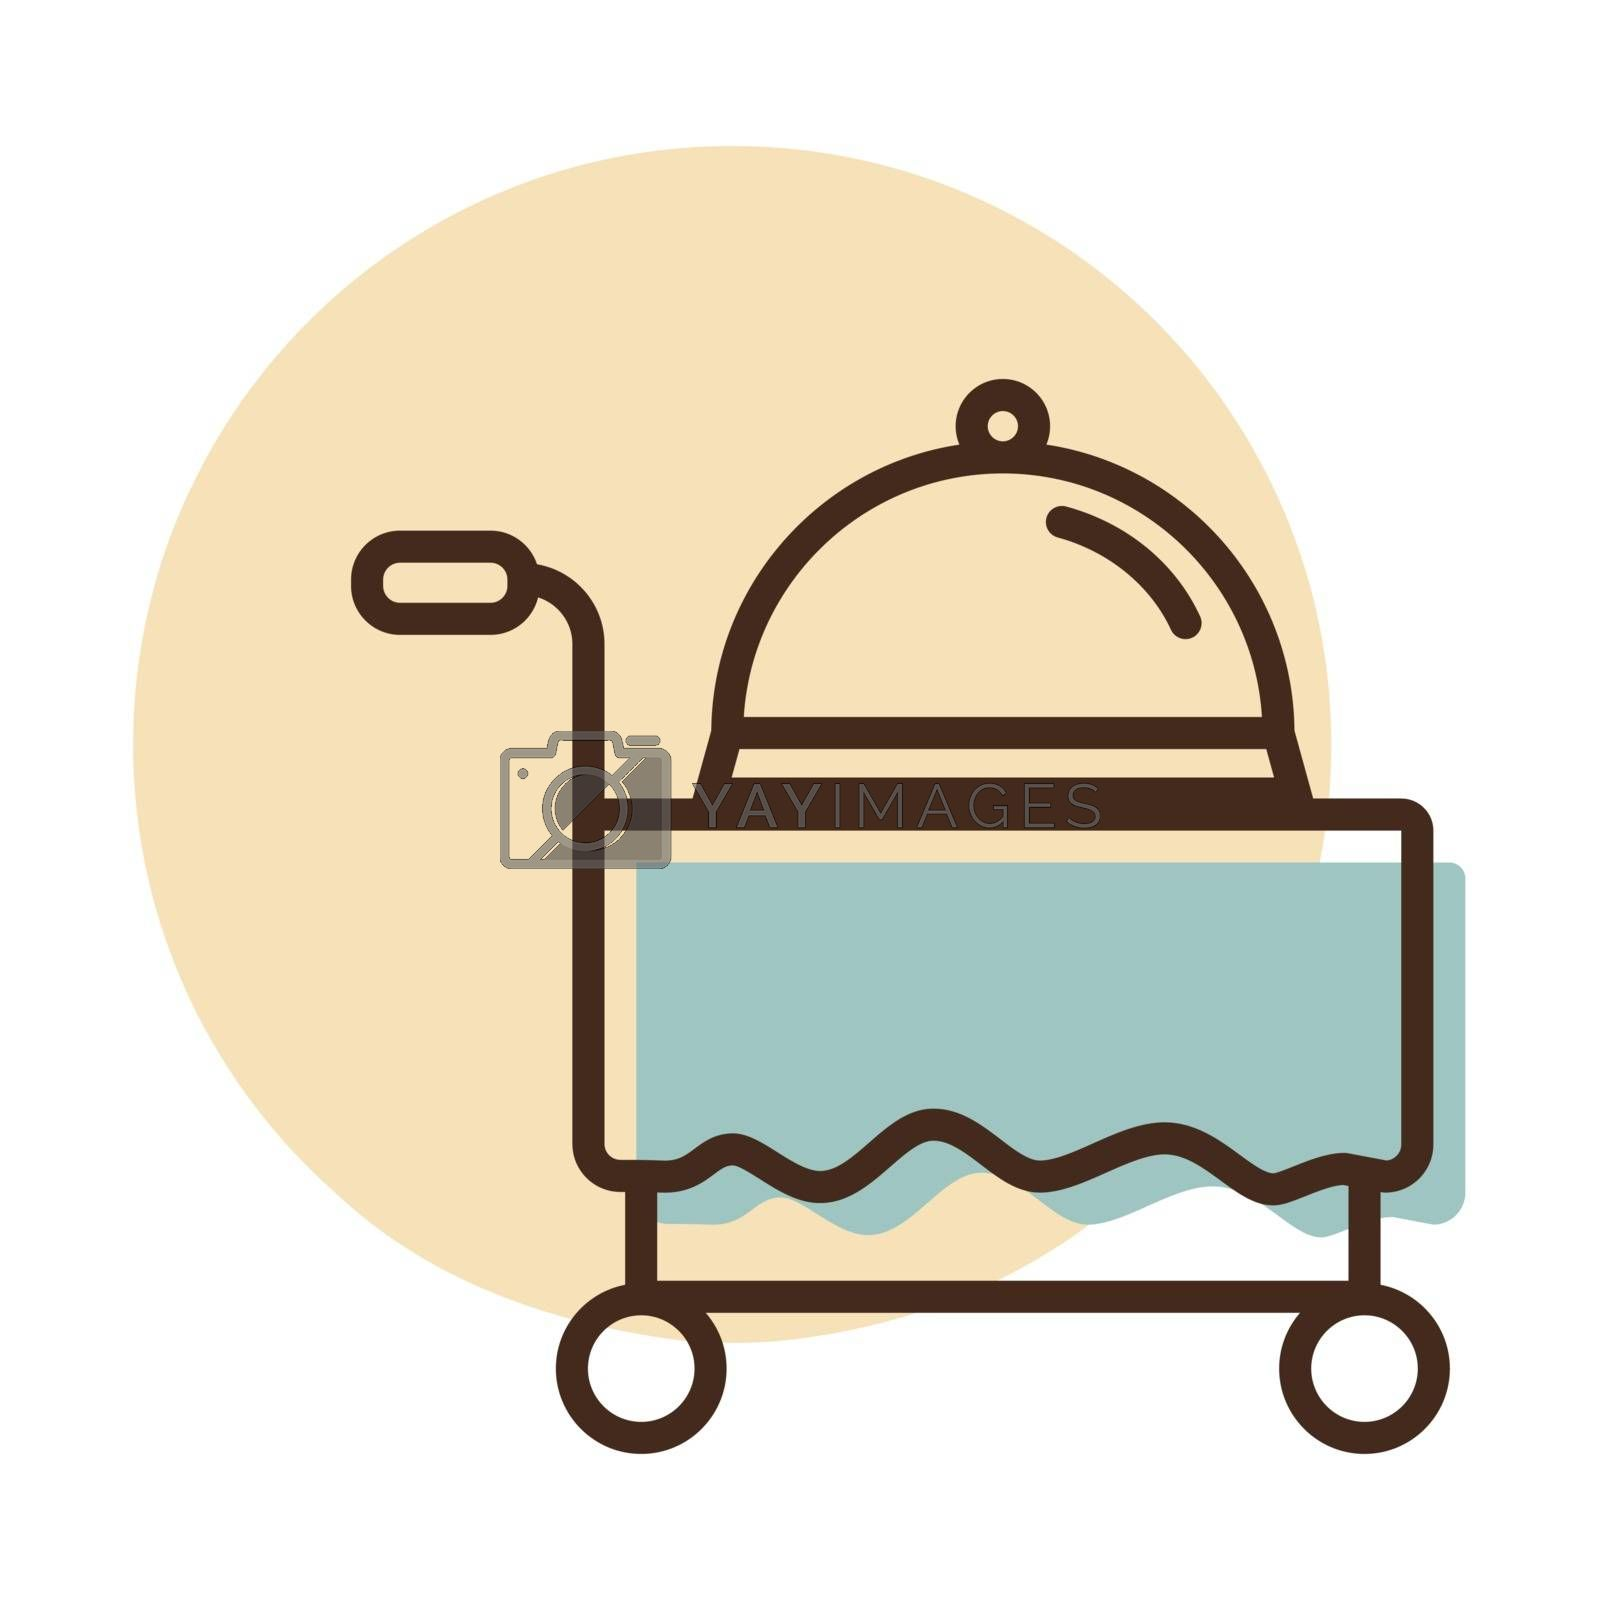 Hotel room service vector icon. Graph symbol for travel and tourism web site and apps design, logo, app, UI